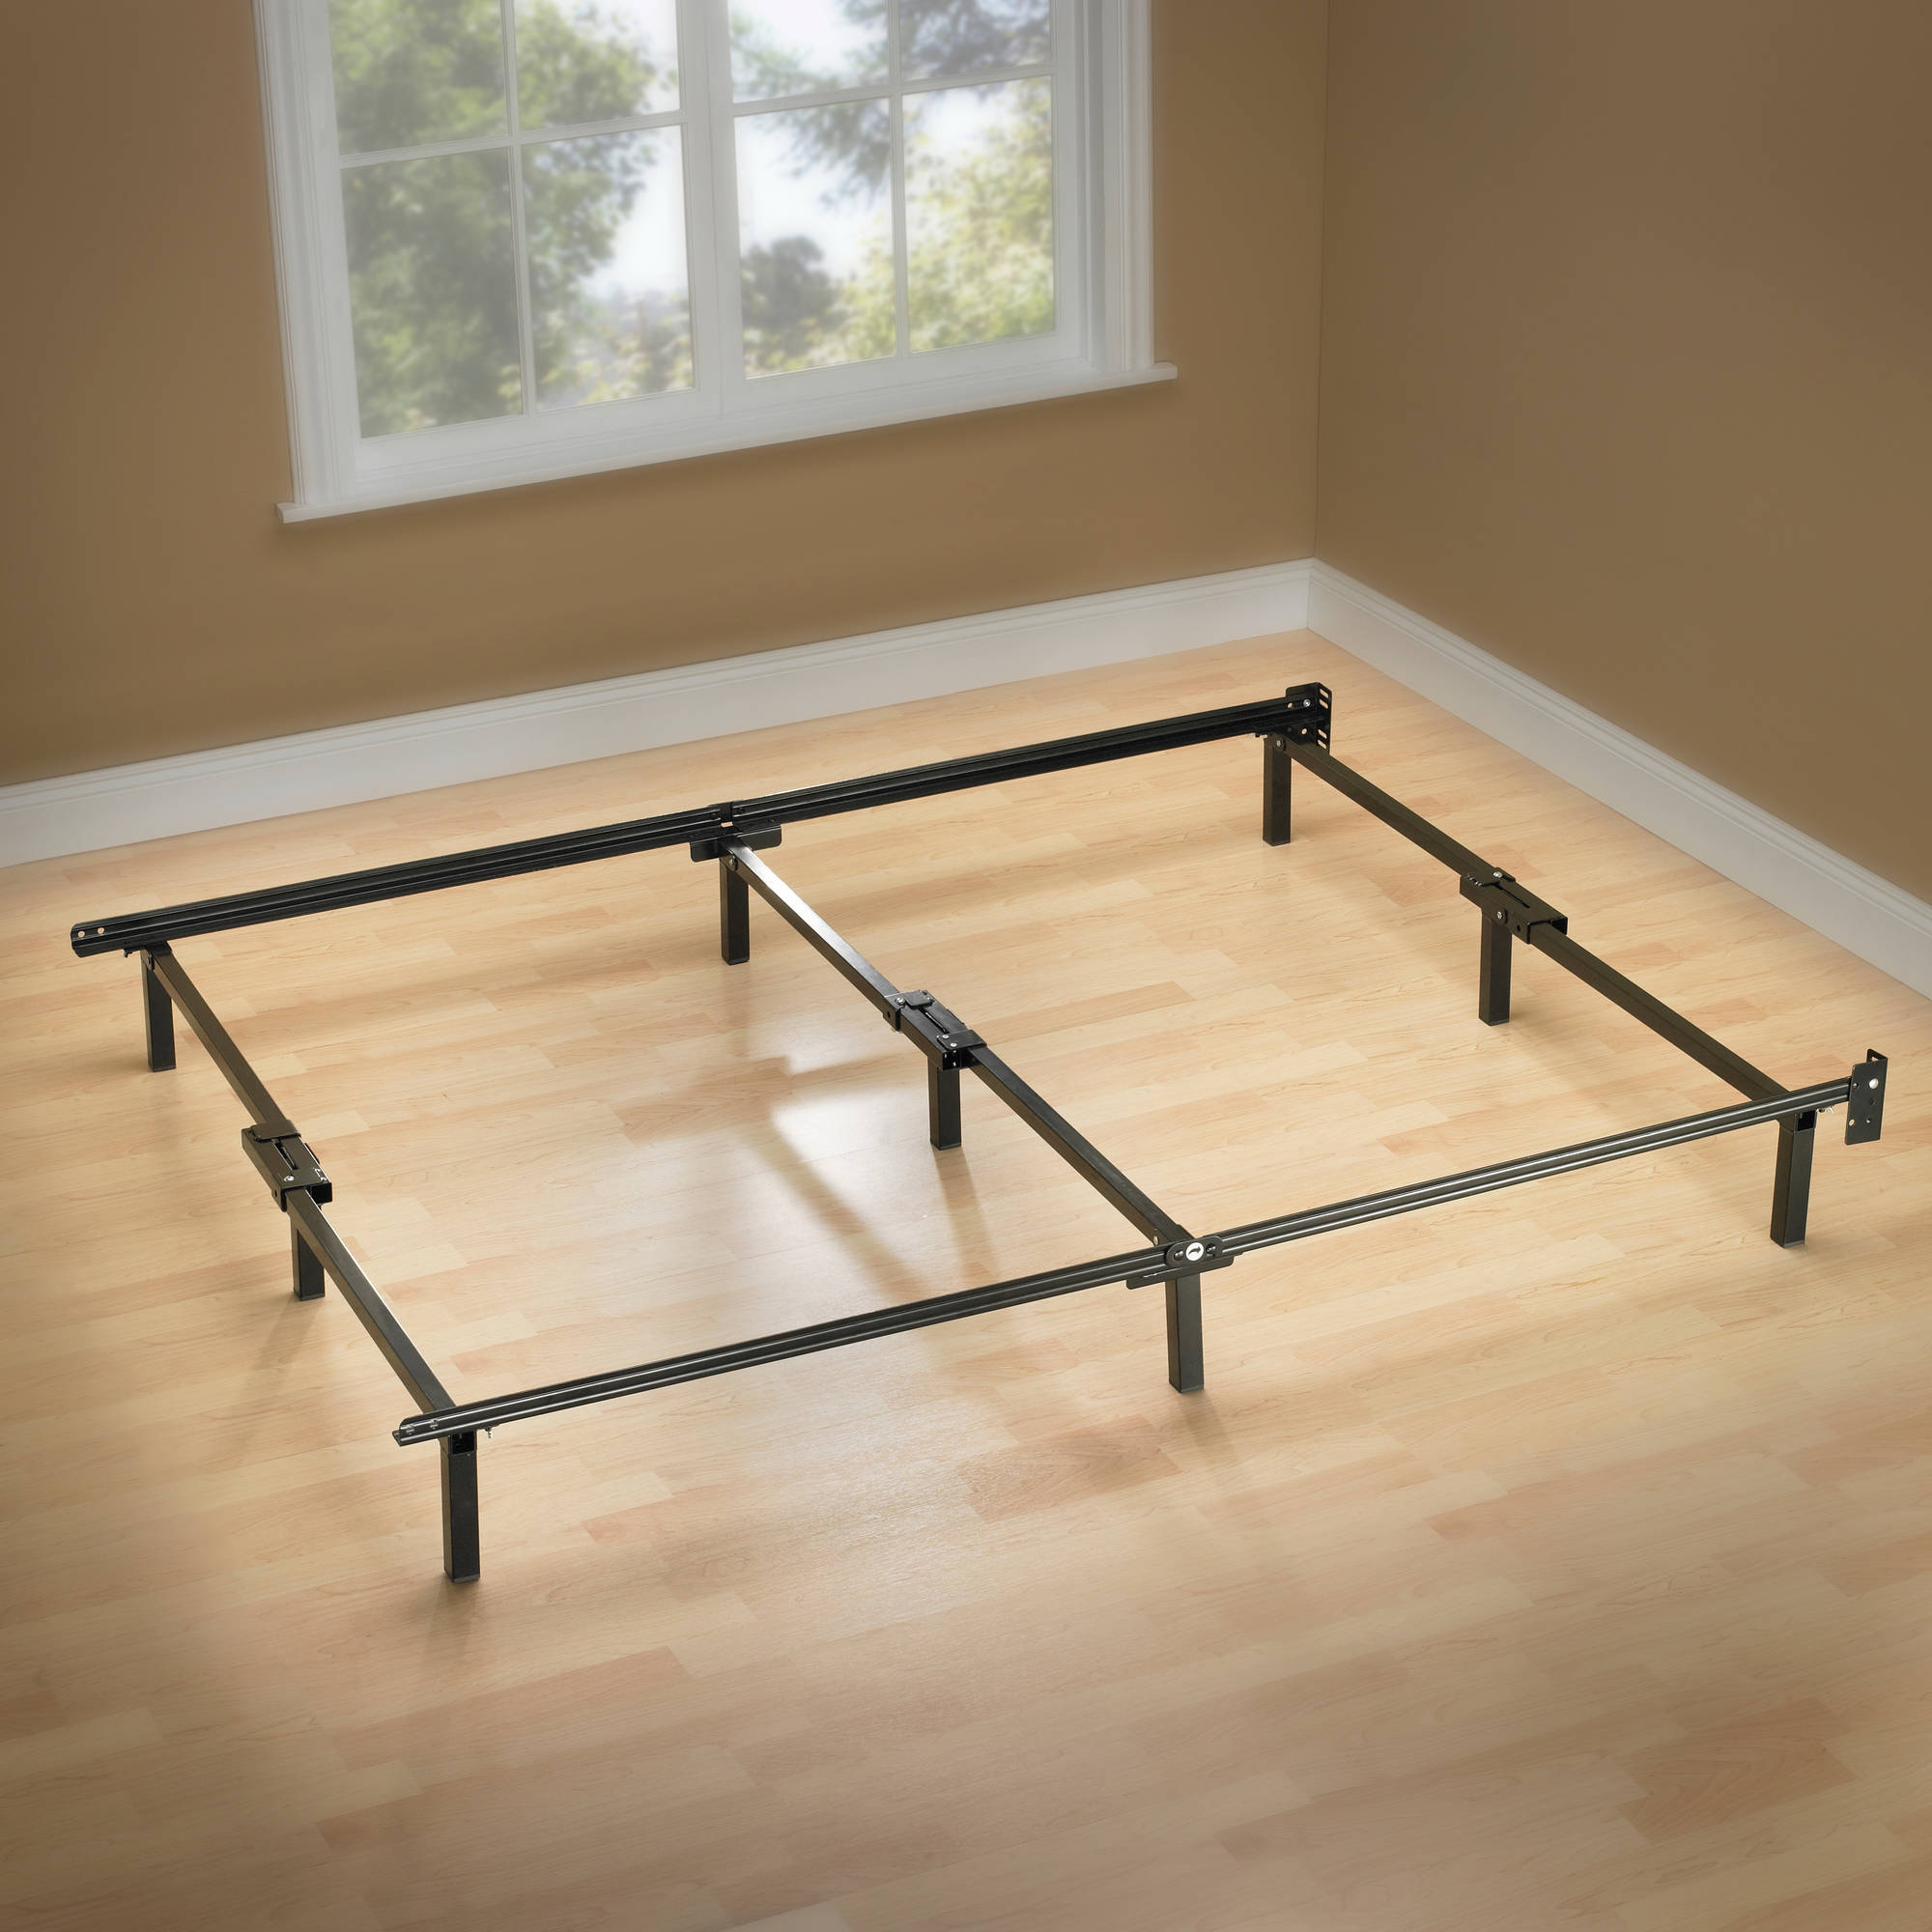 Platform Bed Frame Big Lots Bed Frames Ideas